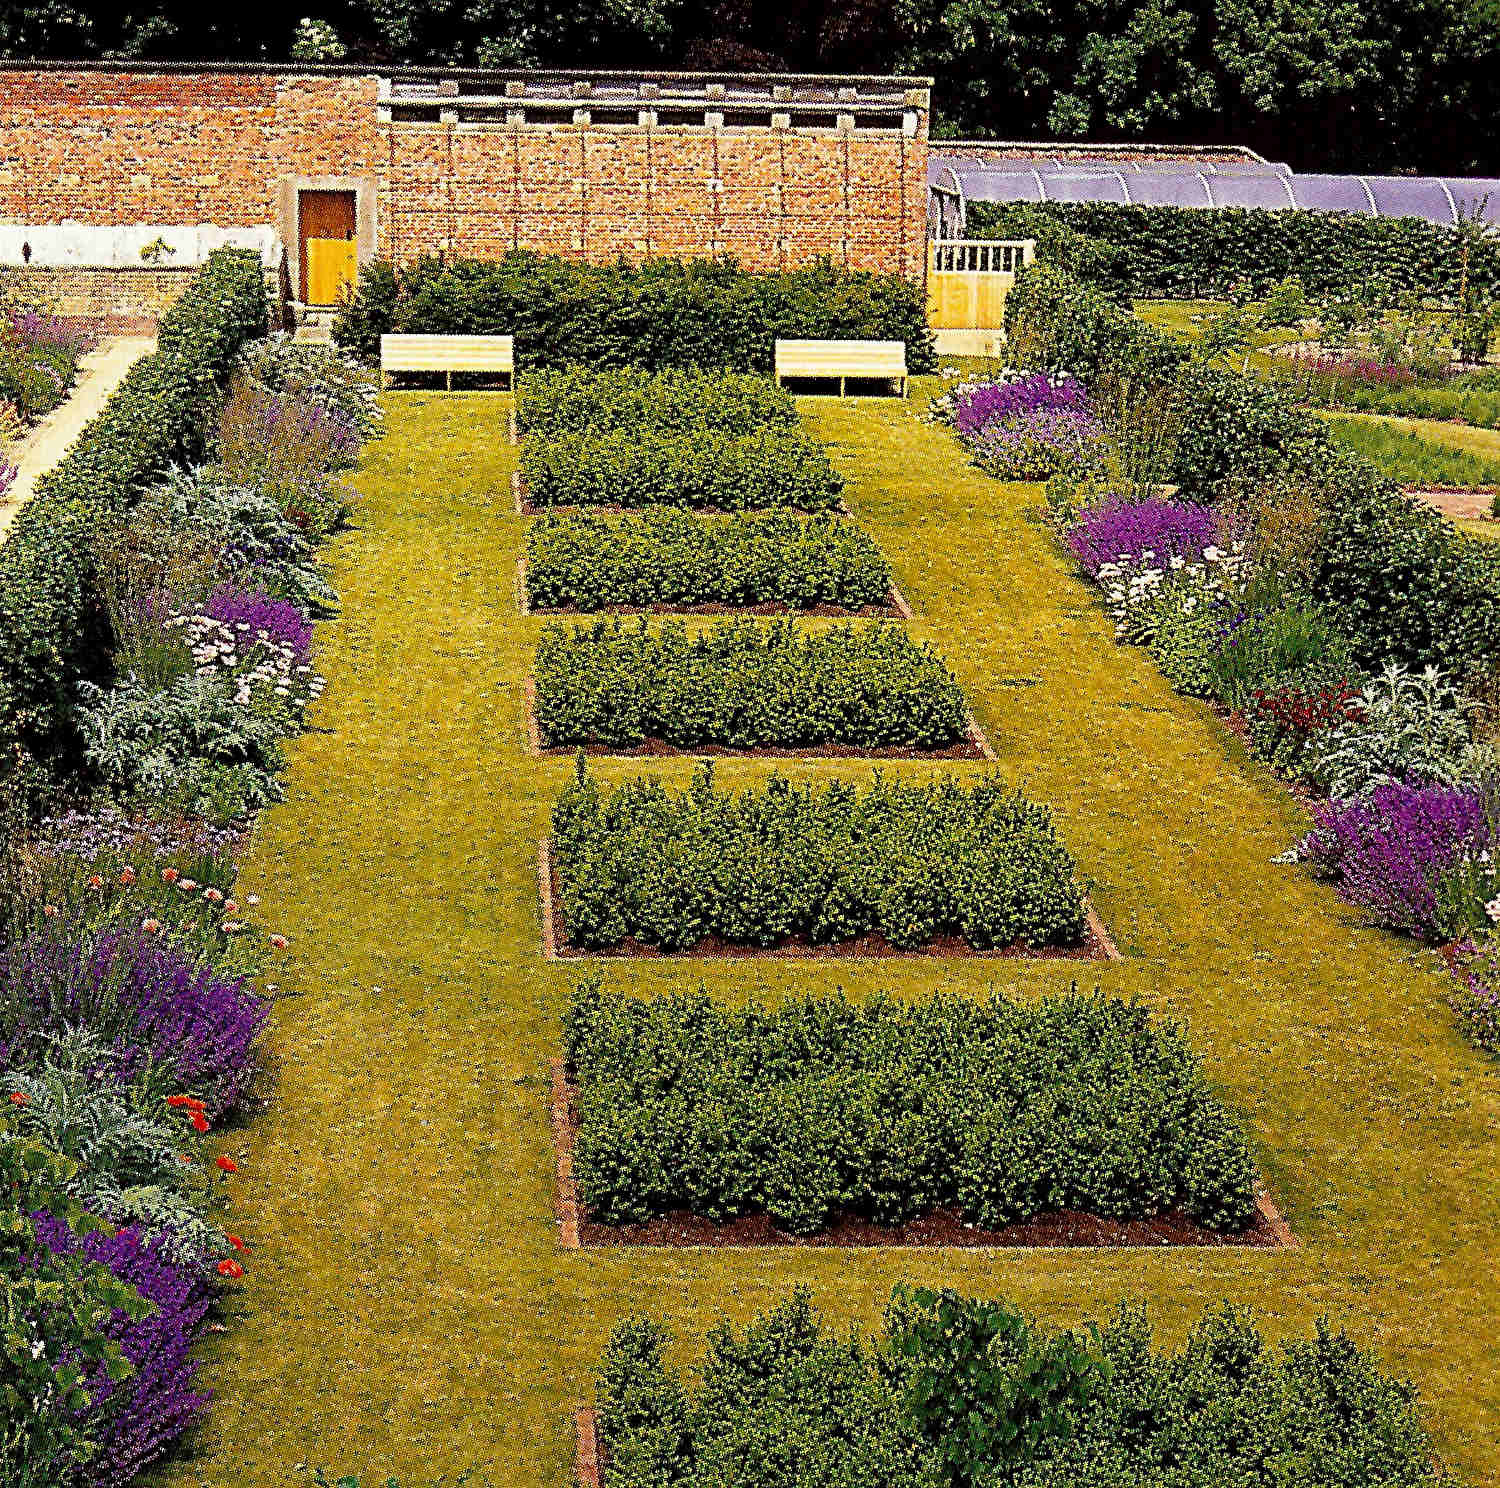 walled gardens - the Spring box garden in the Scampston walled garden, Yorkshire, England - House & Garden via Atticmag